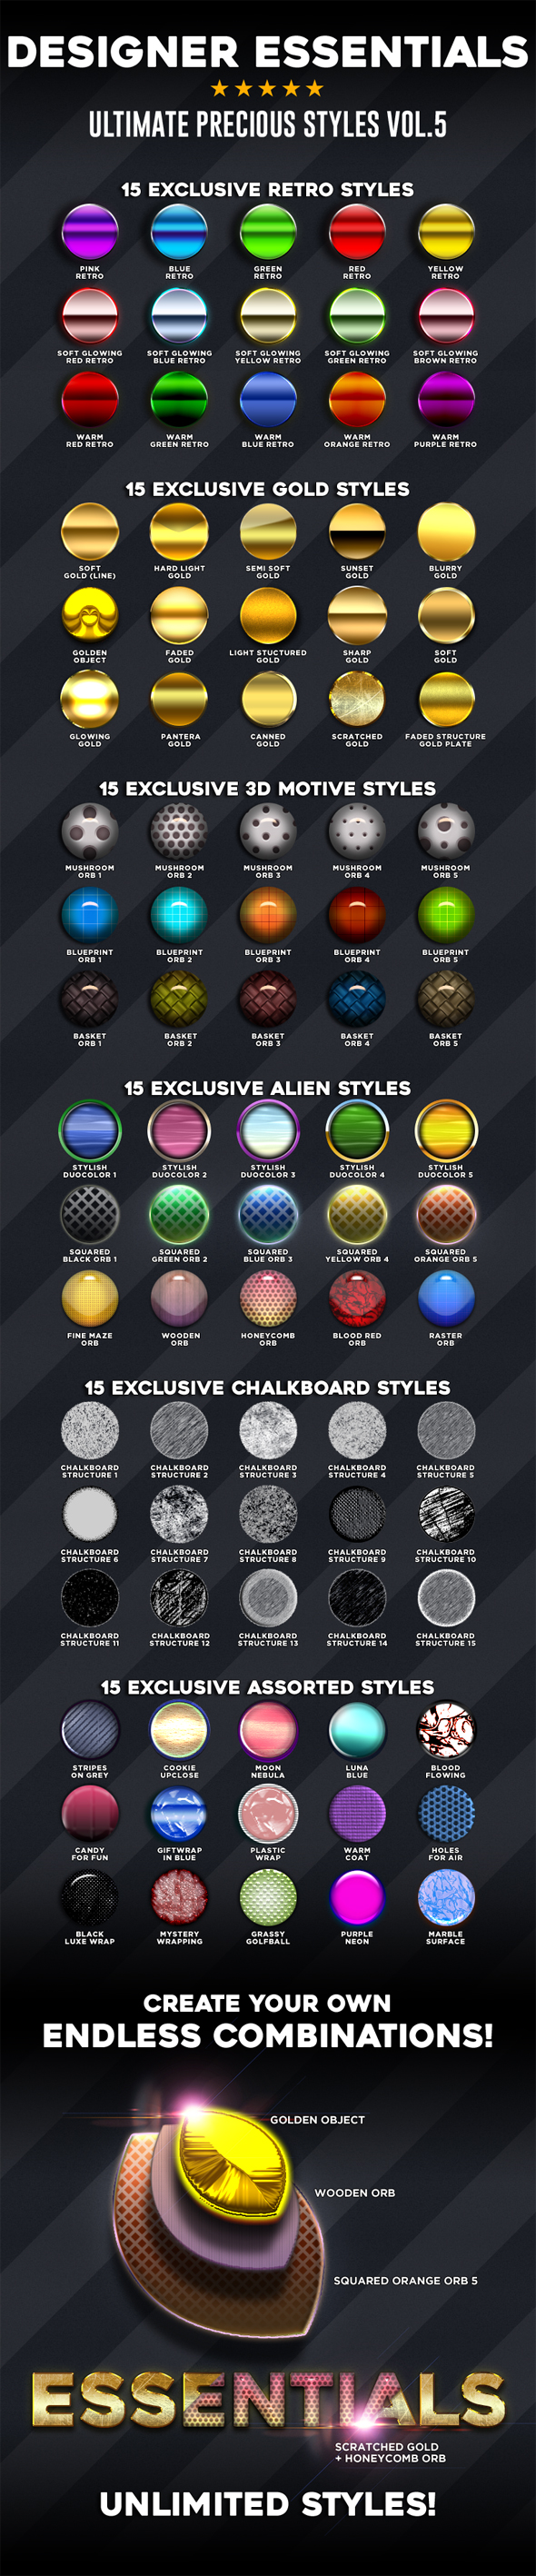 Designer Essentials Ultimate Precious Styles Vol.5 - Styles Photoshop